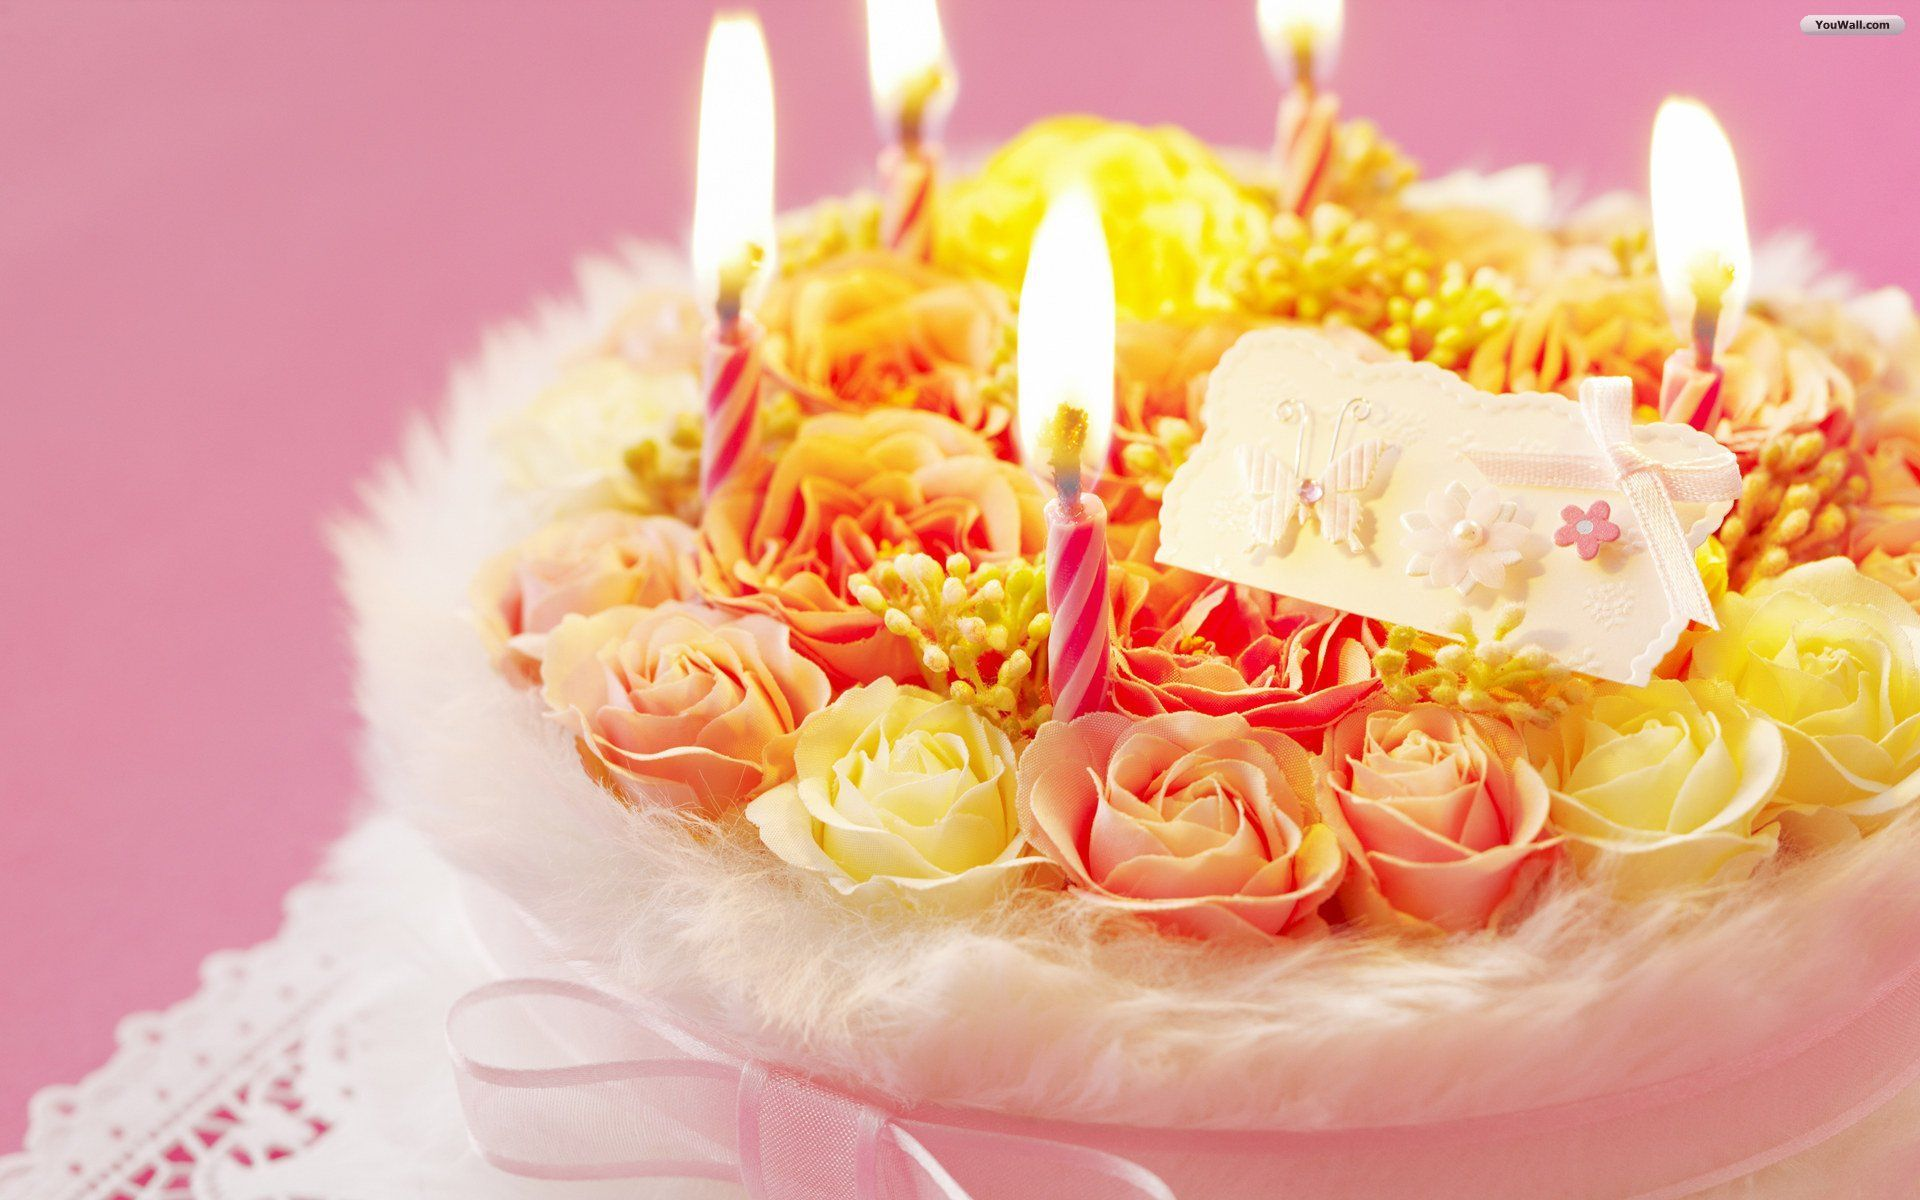 Happy-birthday-with-cake-Happy-birthday-Pinterest-wallpaper-wp3406552